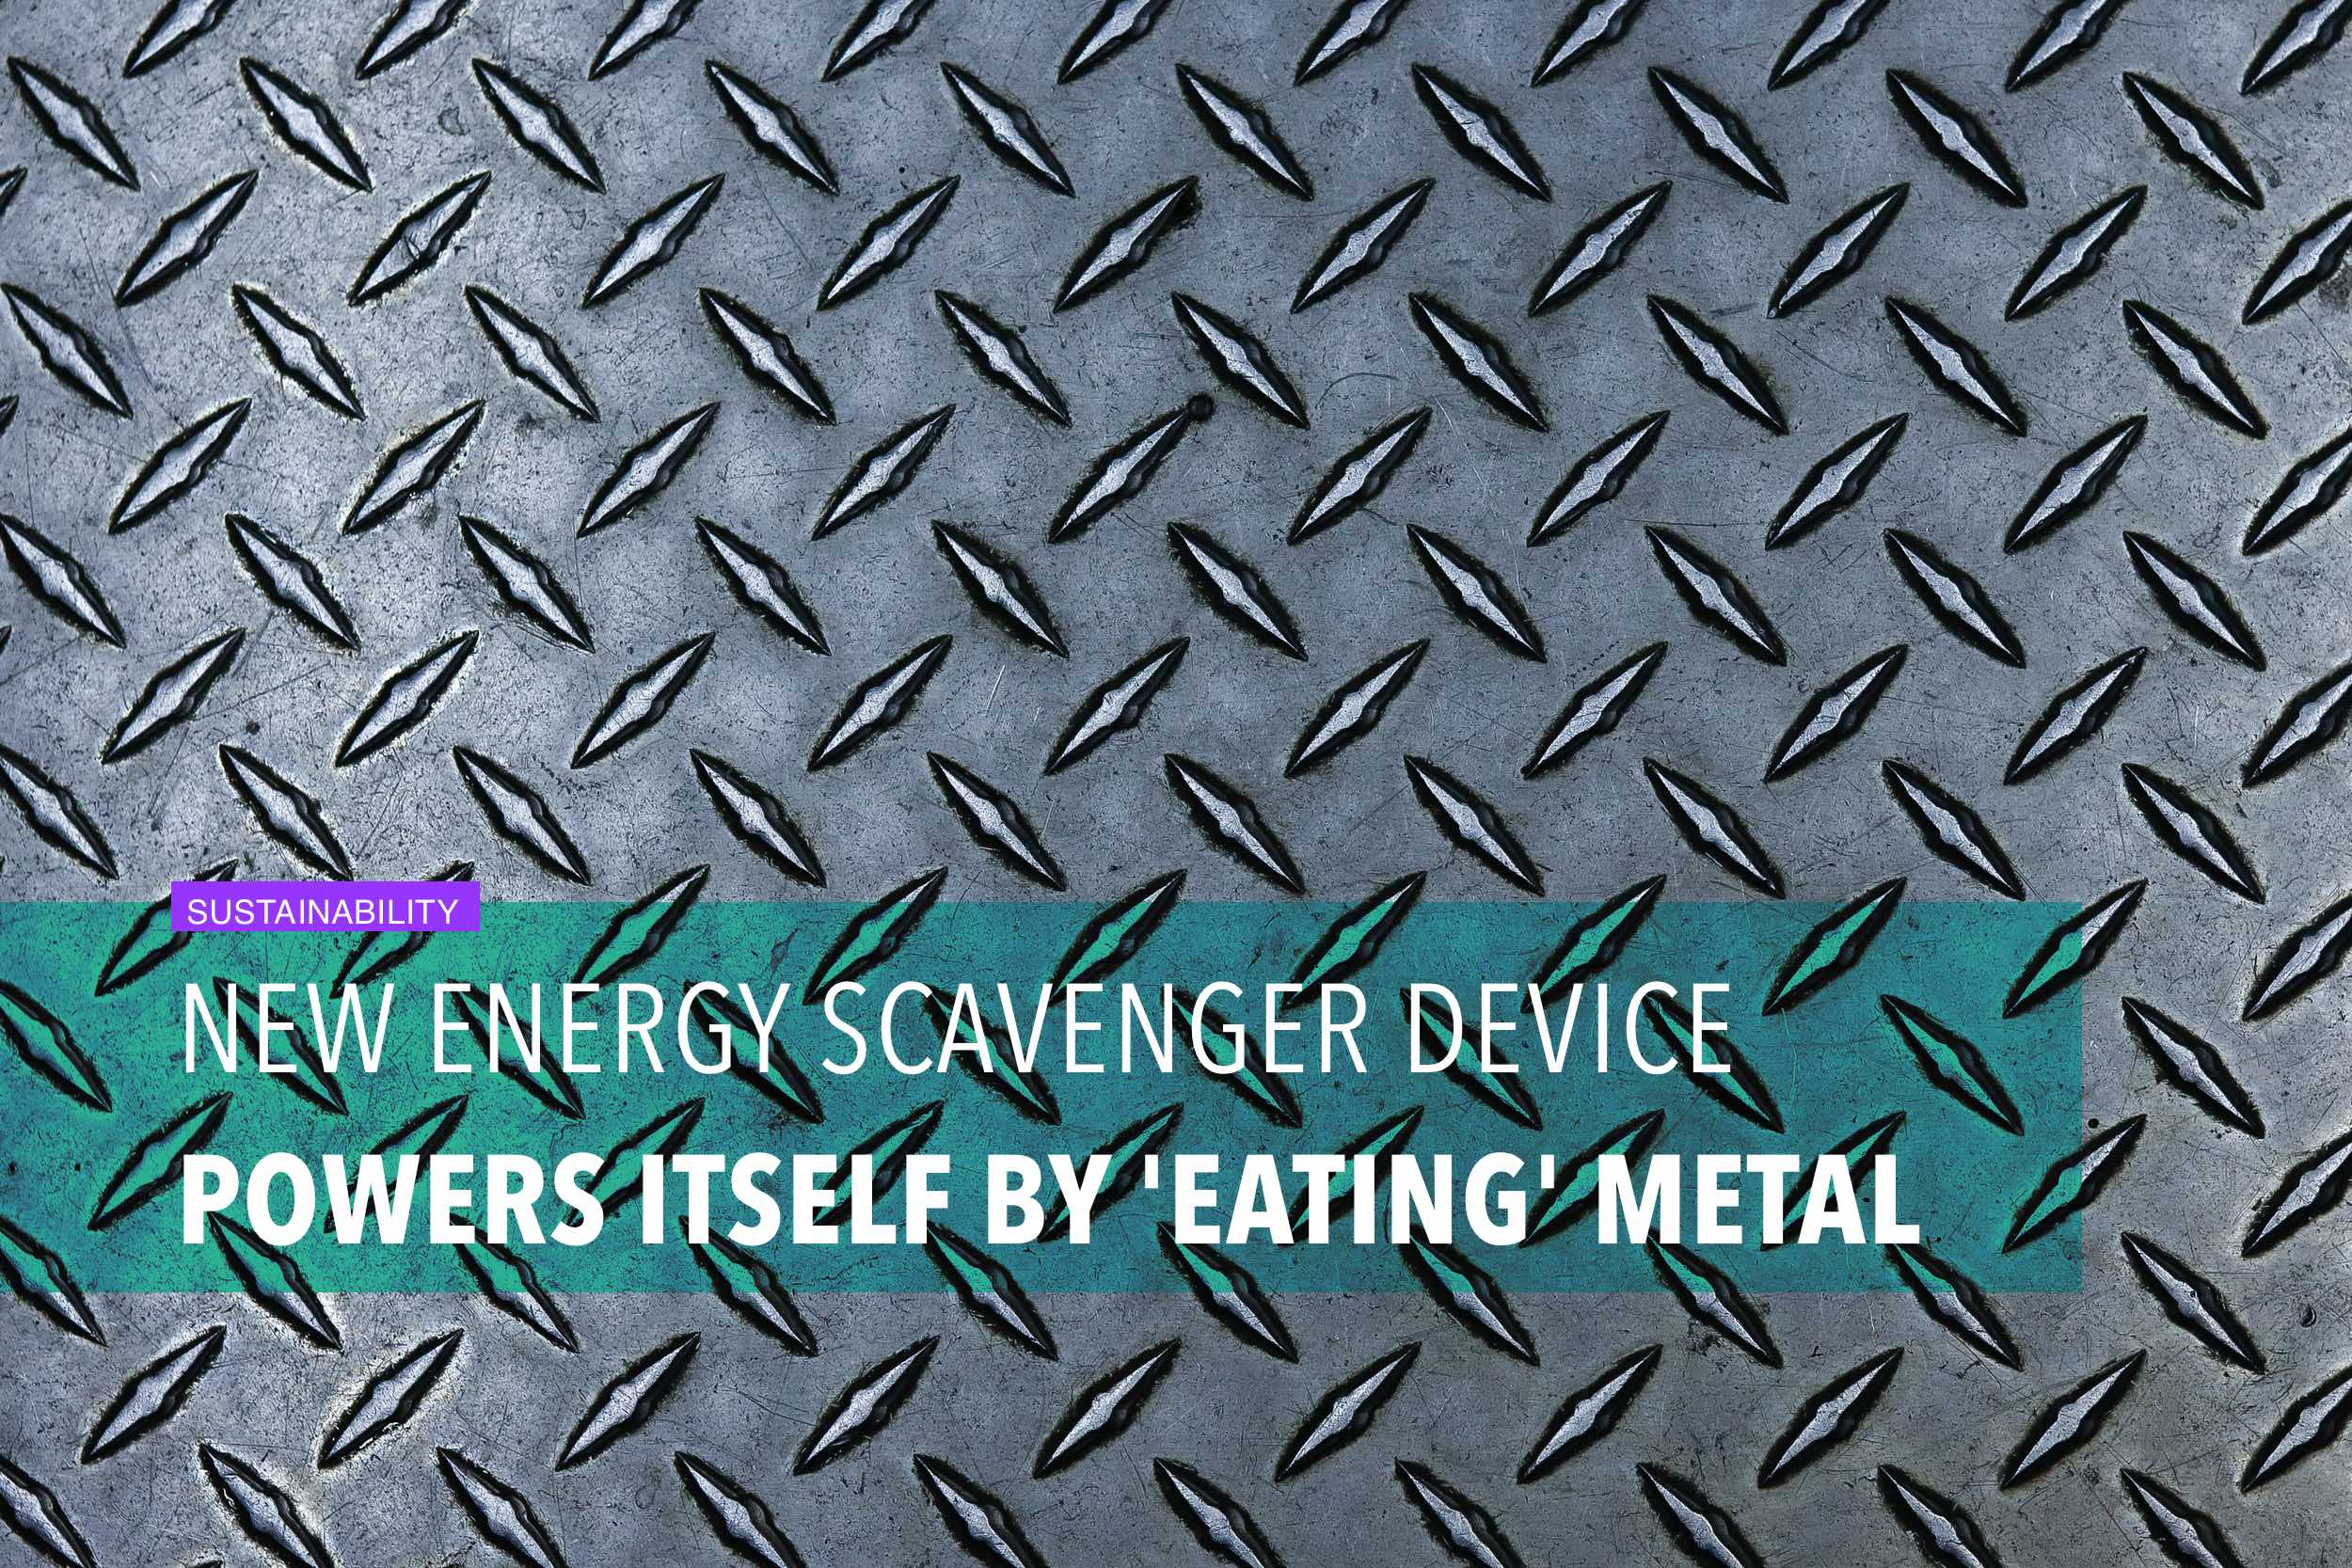 New energy scavenger device powers itself by 'eating' metal